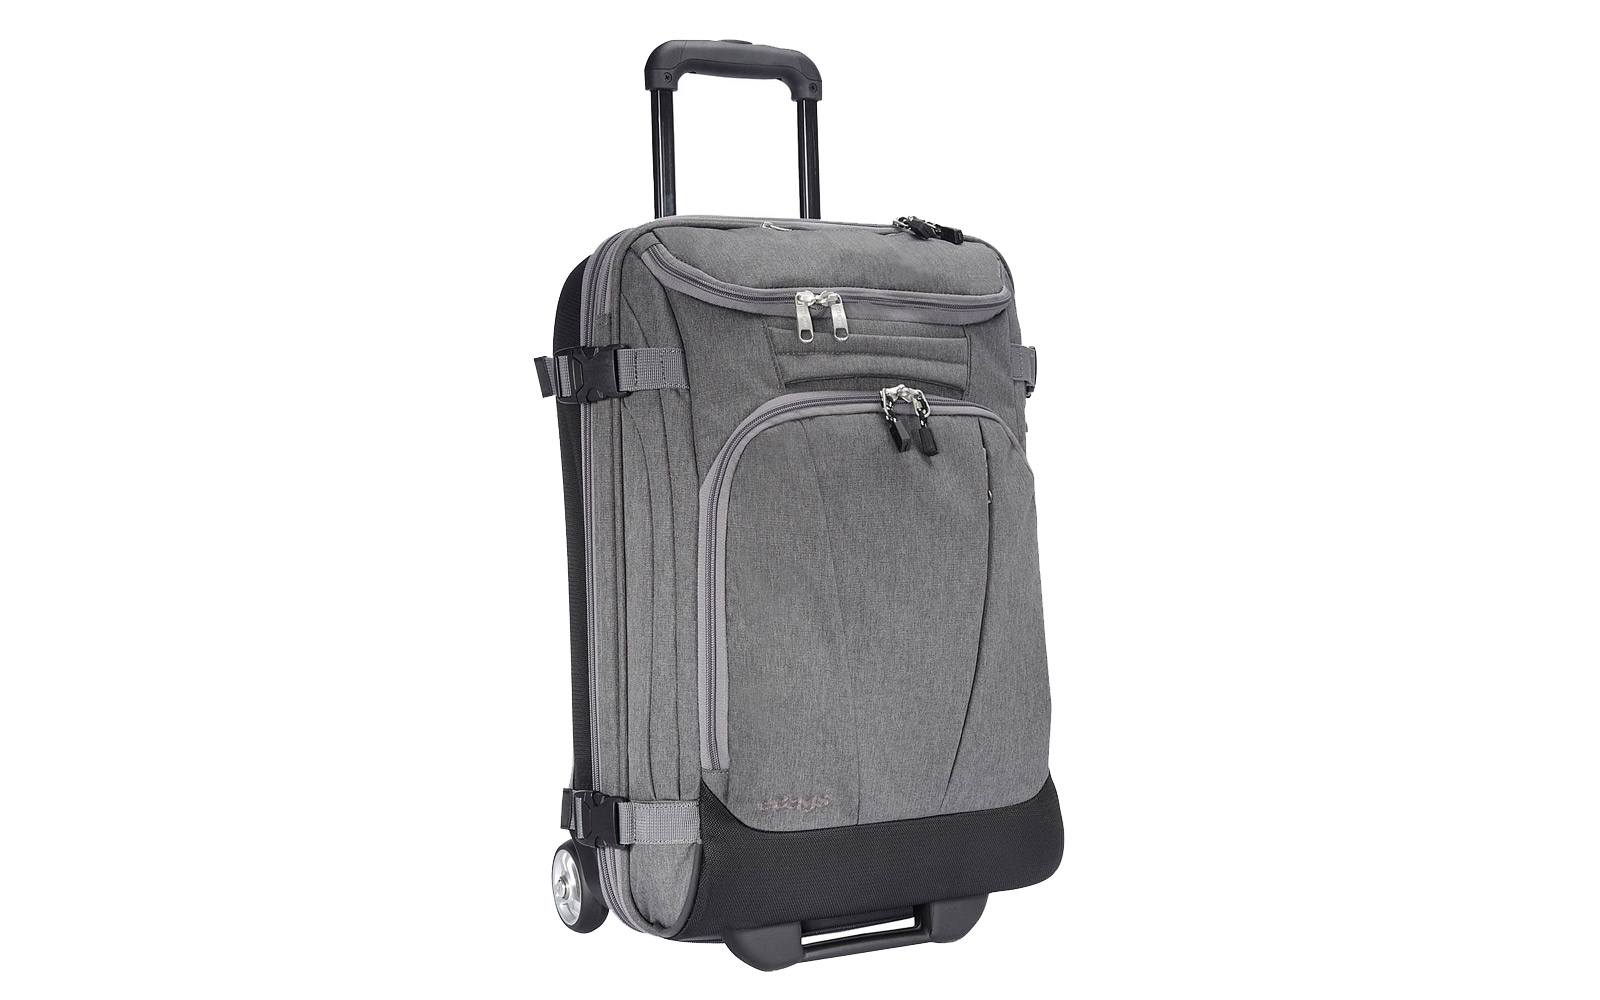 Save up to 85% Off Luggage at eBags